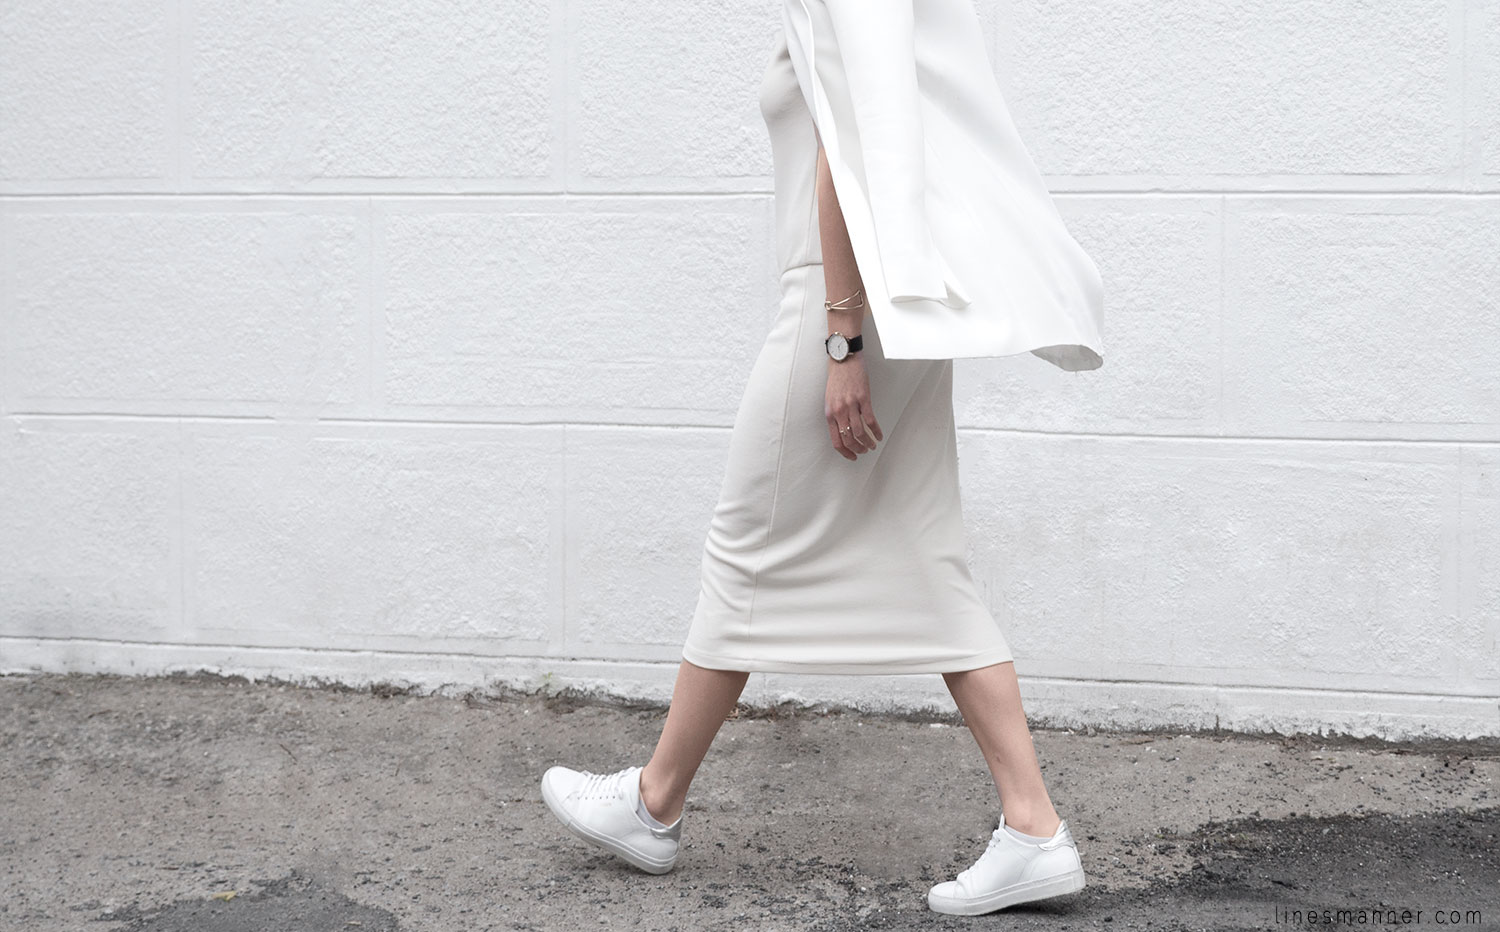 Lines-Manner-Whiteout-Fashion-Outfit-White-Bright-Simplicity-Elegance-Effortless-Anecdote-Degree_Seven-Quality-Summer-Minimal-Essential-Modern-Sleek-Details-5